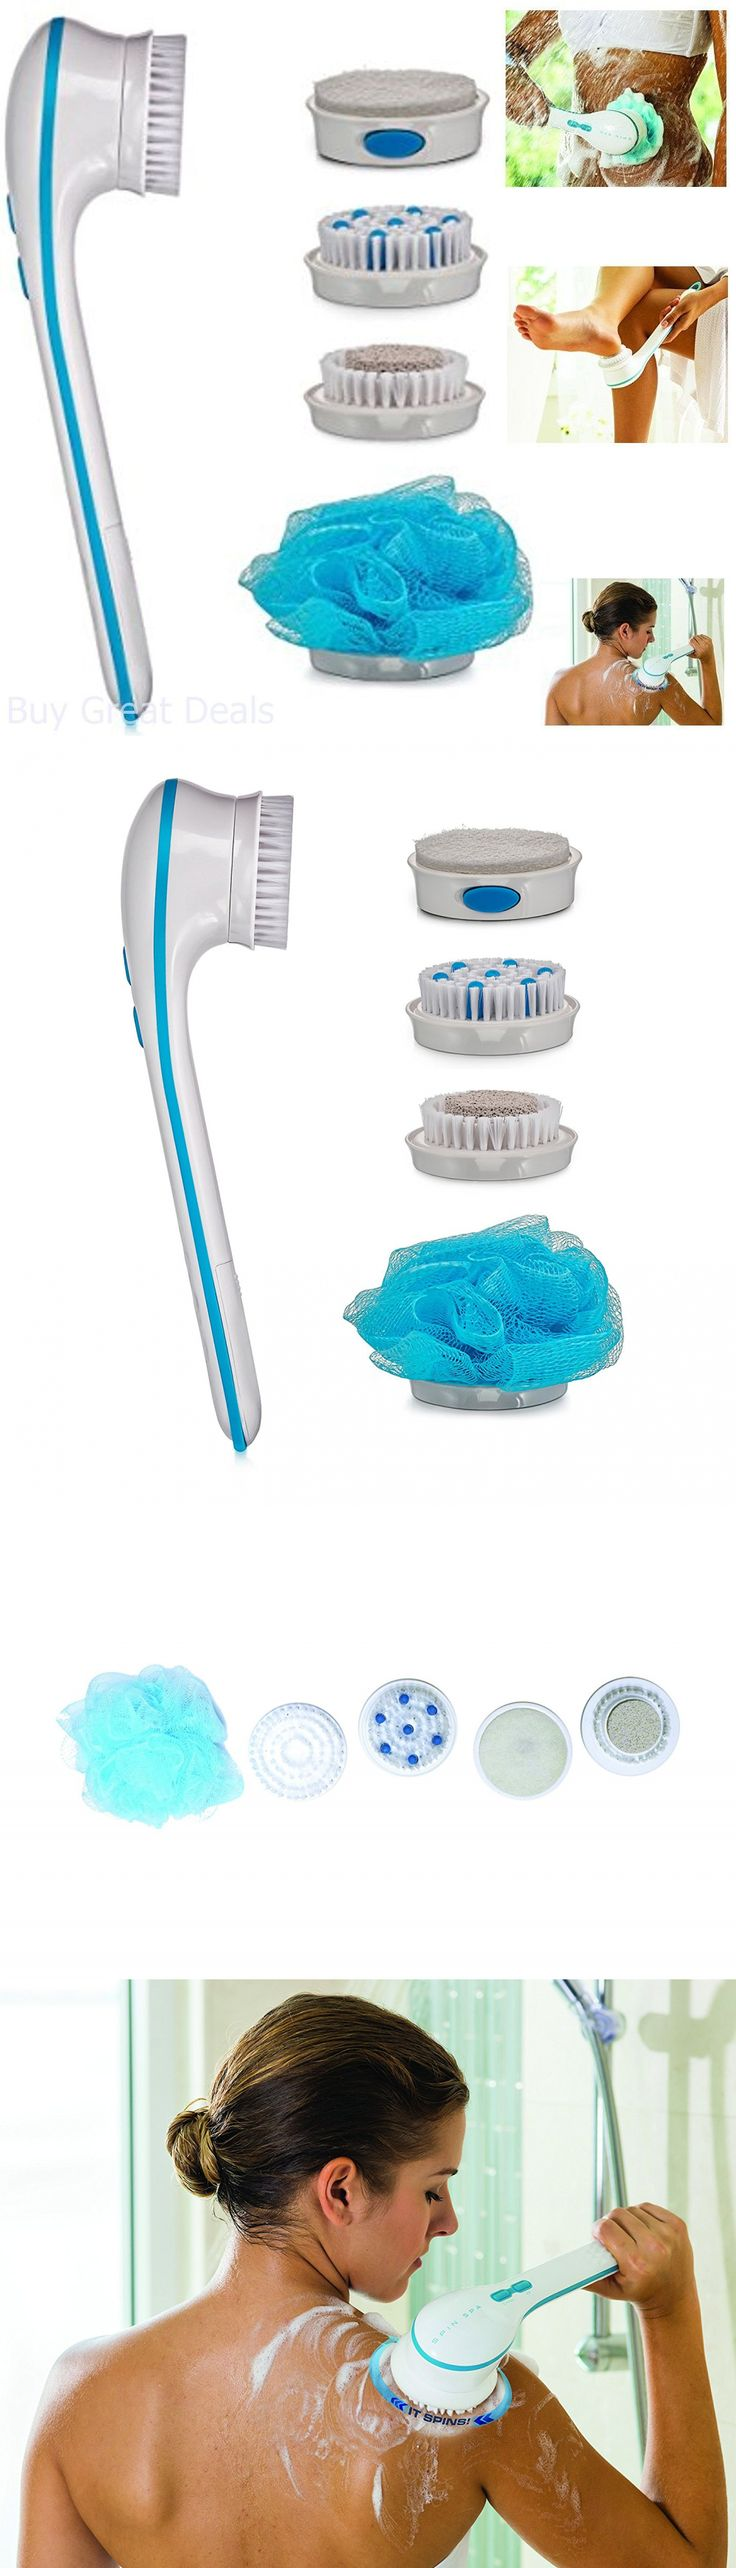 Bath Brushes and Sponges: New Genuine Spin Spa Body Brush With 5 Attachments Scrub Massage As Seen On Tv -> BUY IT NOW ONLY: $48.75 on eBay!